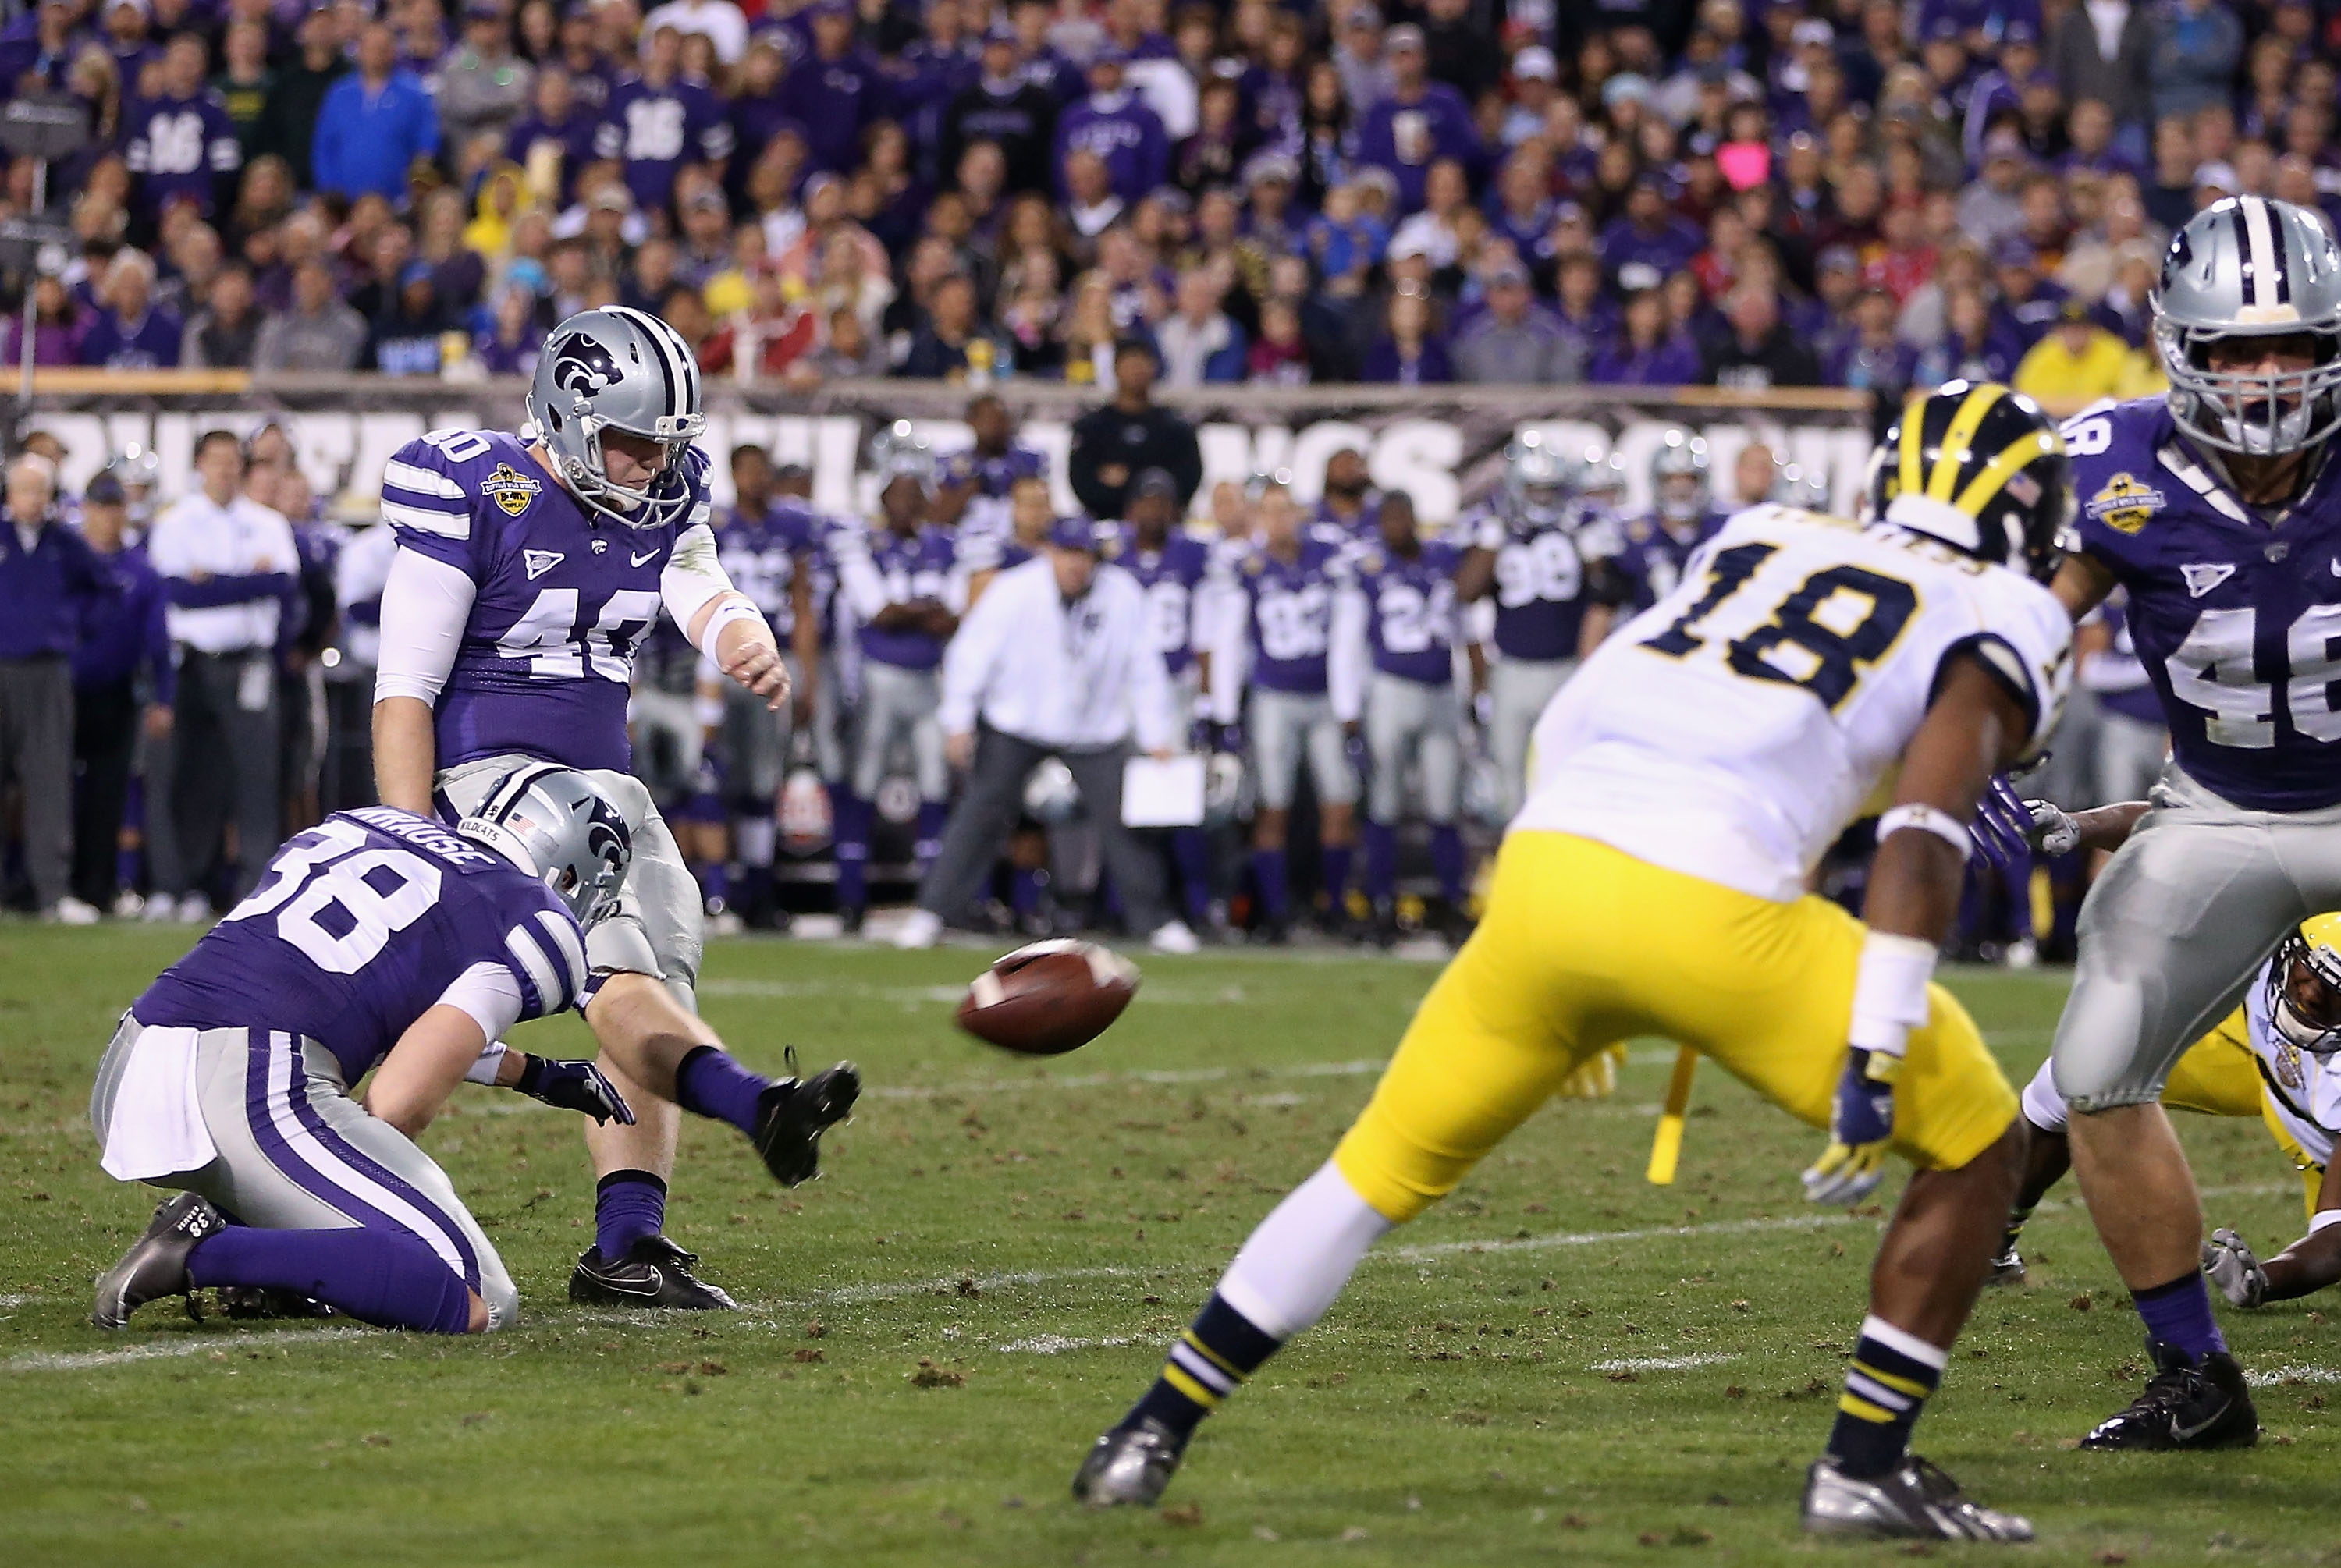 Ian Patterson returns in 2015 as K-State's primary kickoff specialist. Surprisingly, it doesn't appear he's on scholarship yet.